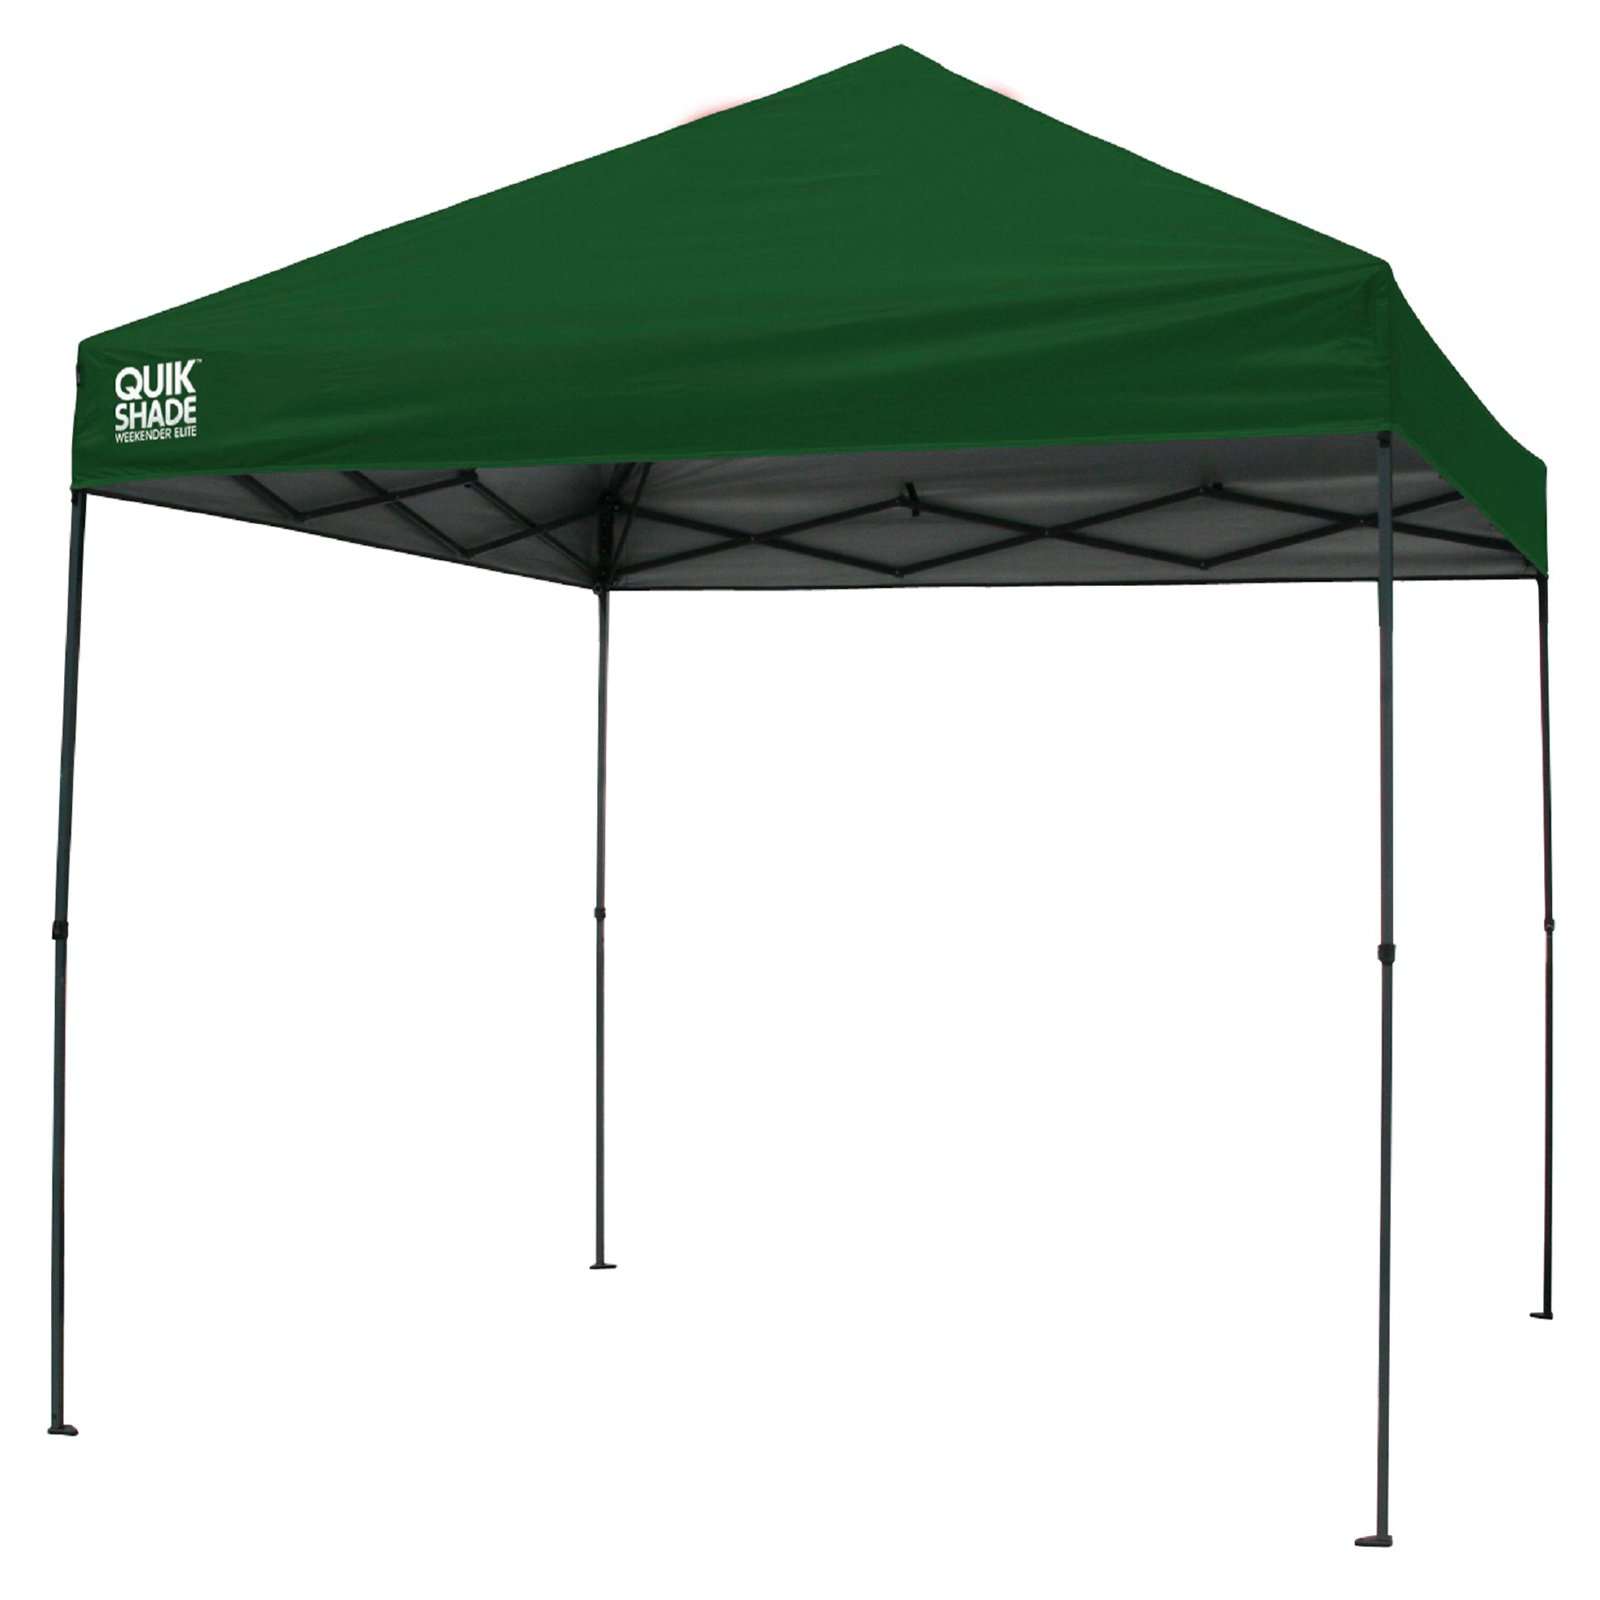 Quik Shade Weekender Elite 10'x10' Straight Leg Instant Canopy (100 sq. ft. coverage) by Shelter Logic